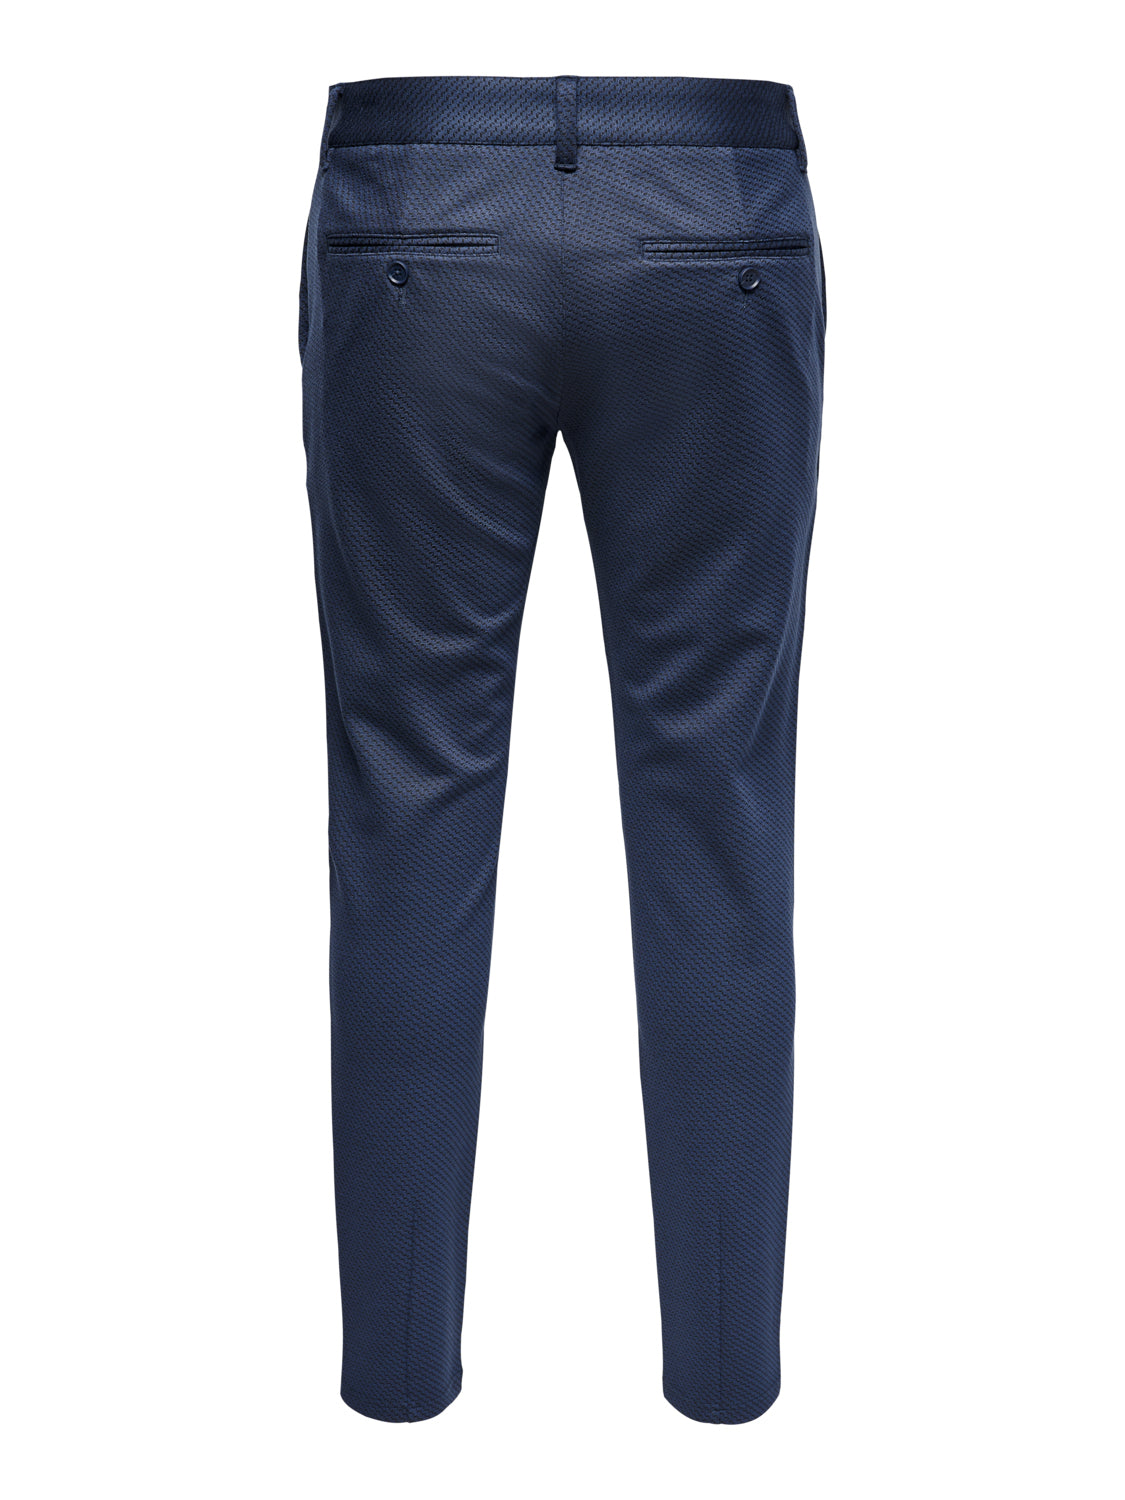 Mark Kamp Tap Pant GW 7713 - Navy - Only & Sons